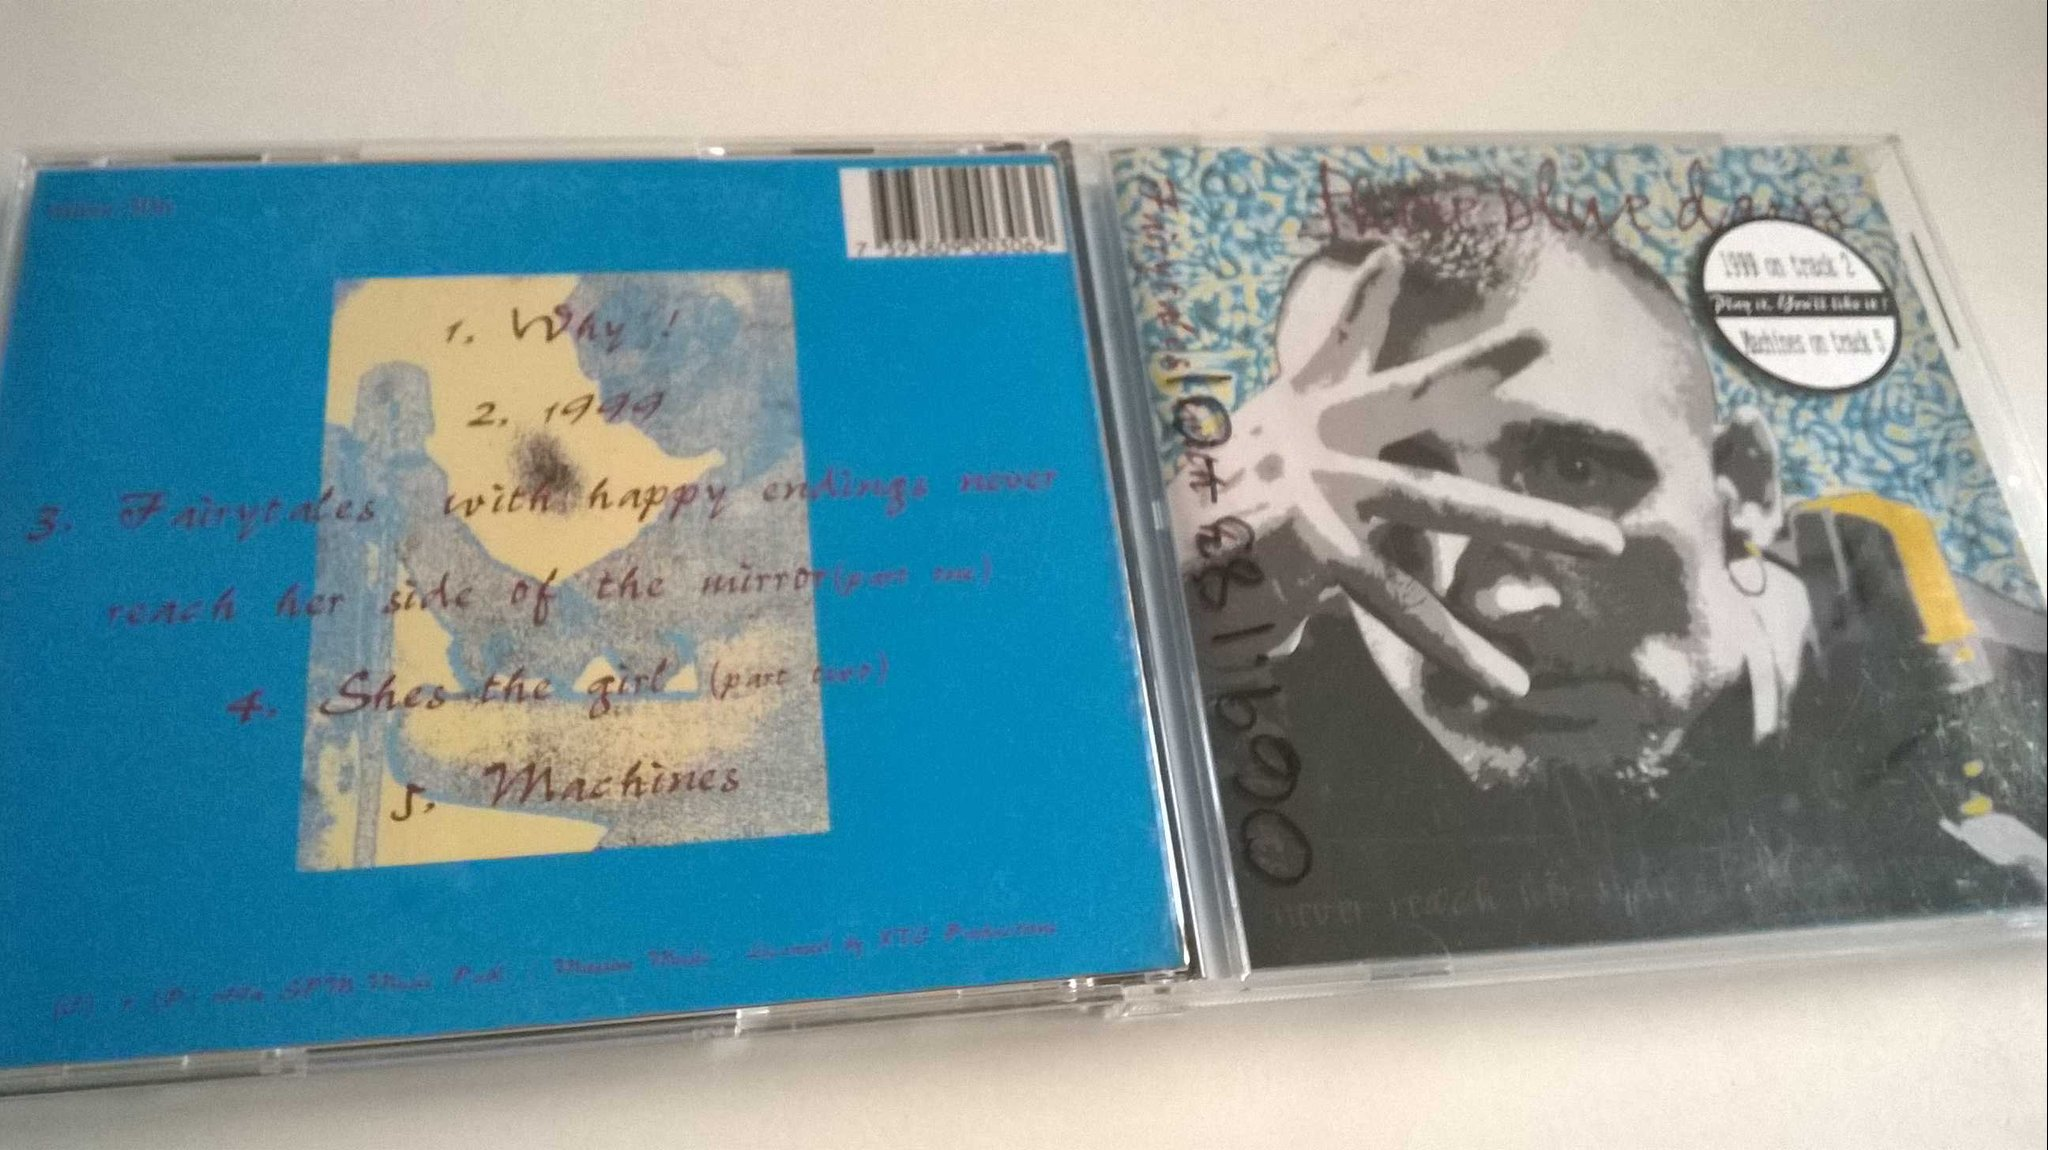 These Blue Days - Fairytales With Happy Endings, CD, rare!